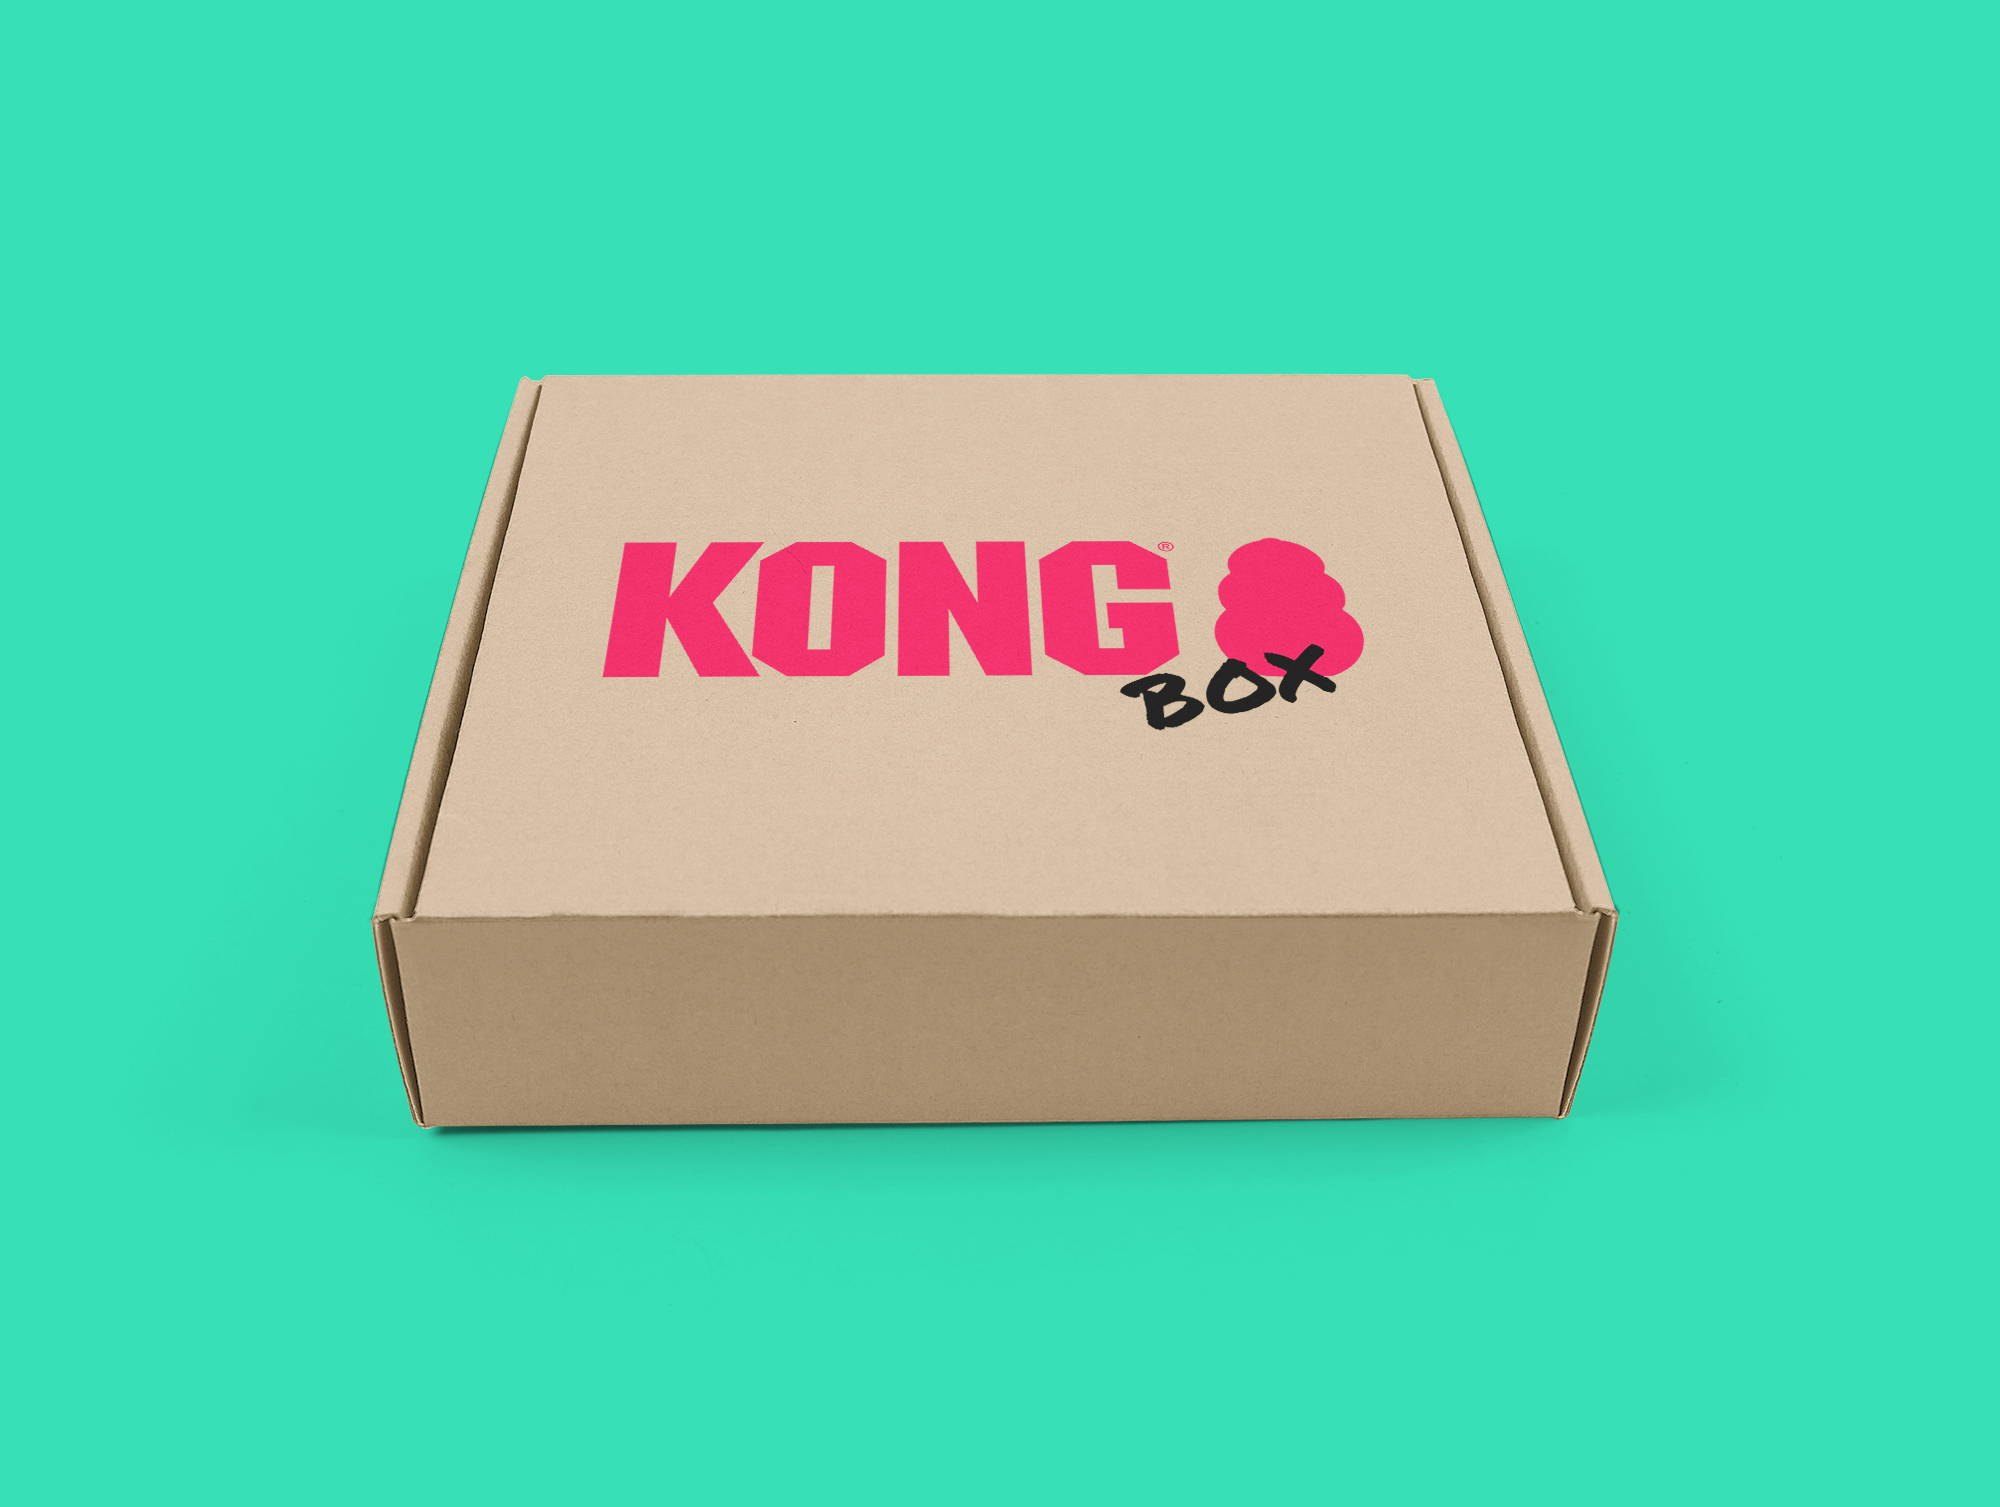 KONG Summer Fun Box